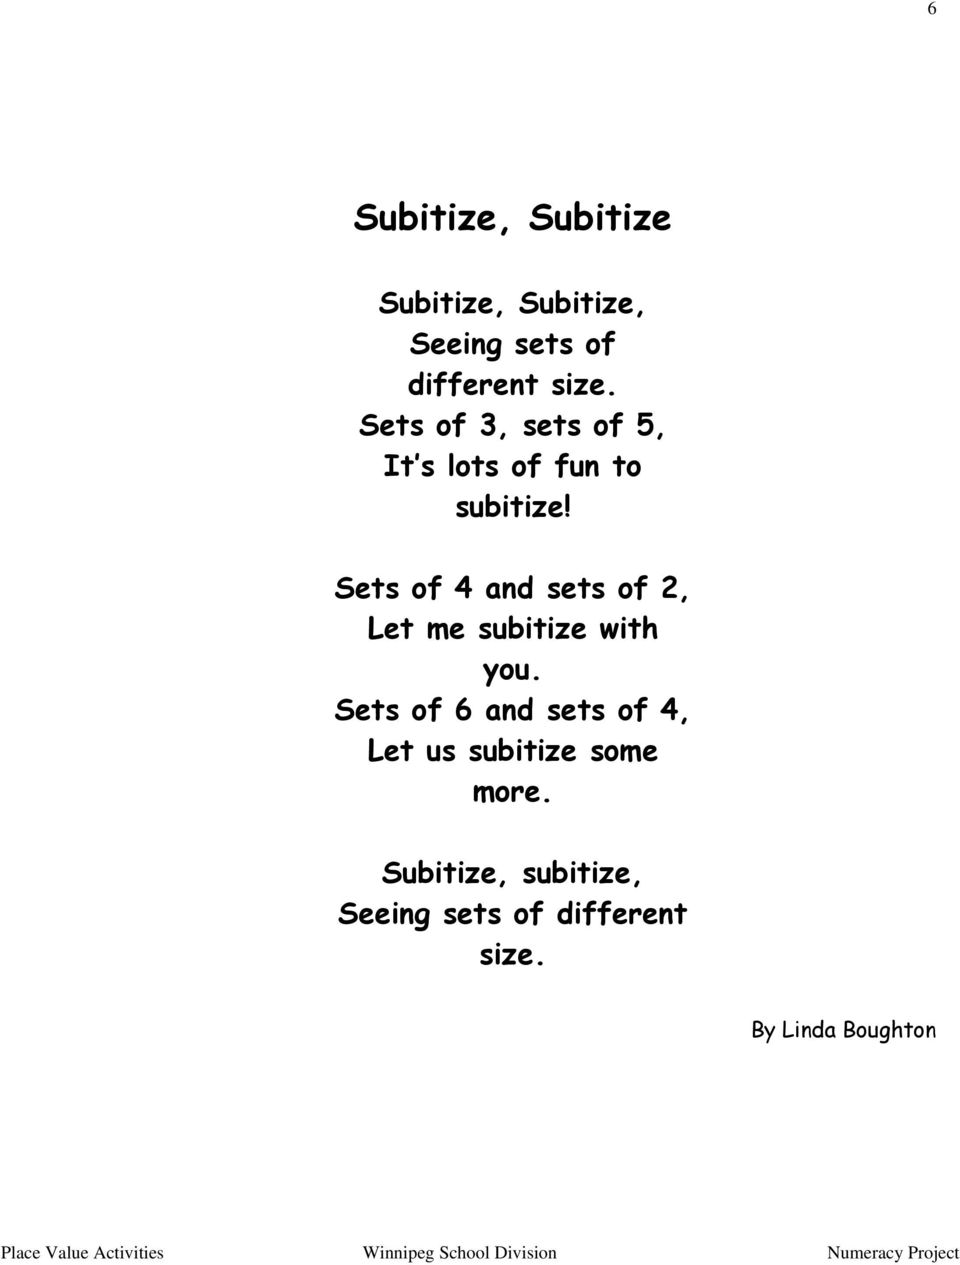 Sets of 4 and sets of 2, Let me subitize with you.